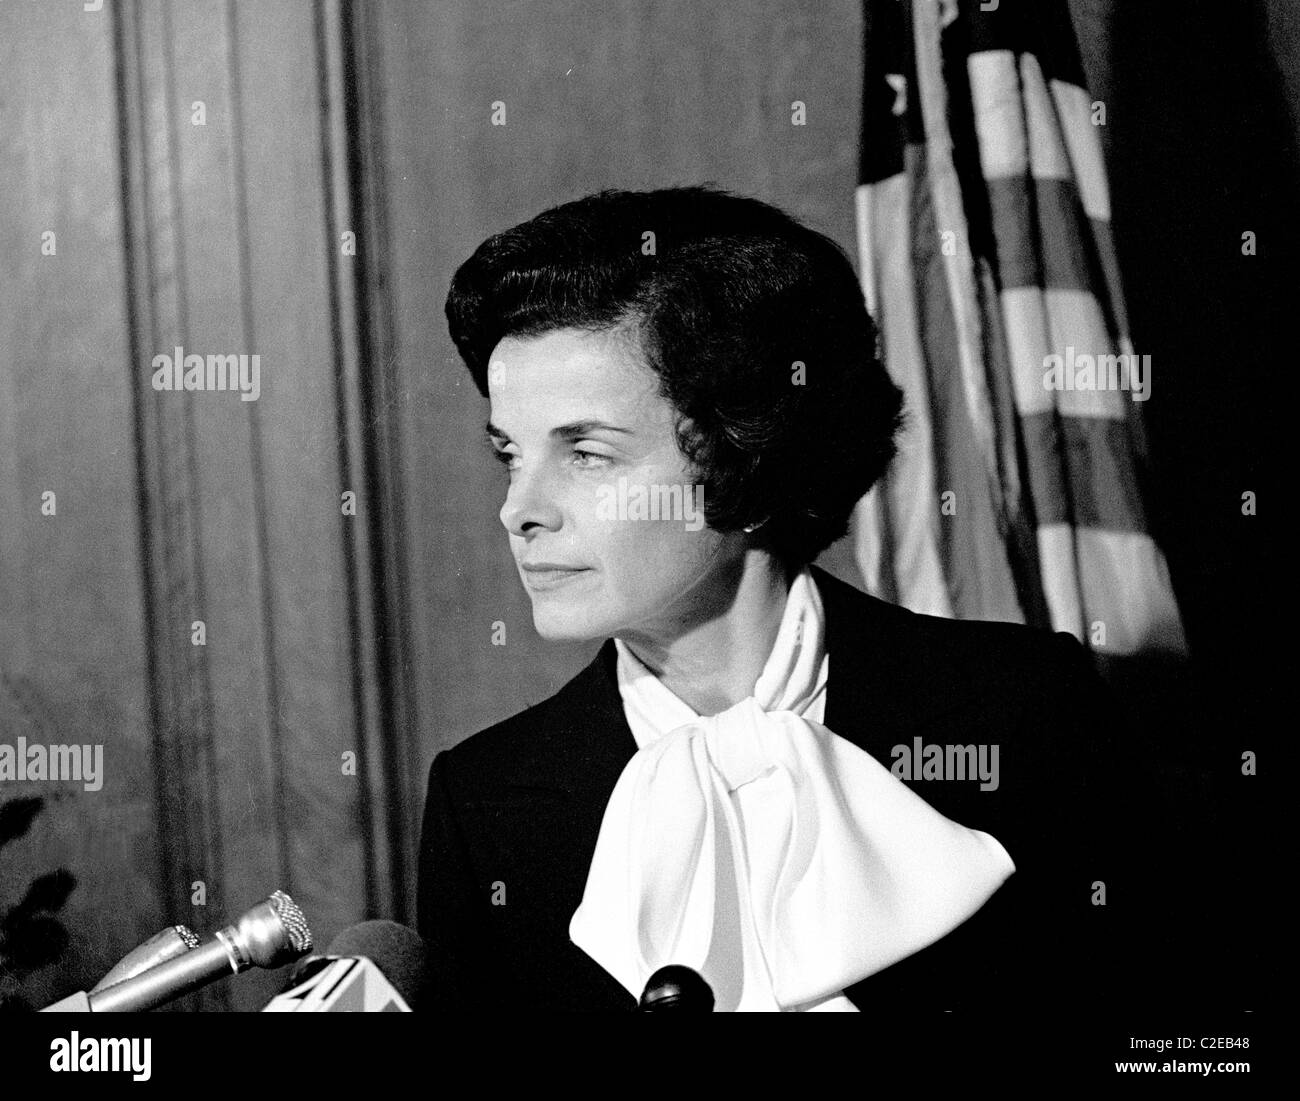 President of the San Francisco board of Supervisors, Dianne Feinstein becomes San Francisco California - Stock Image